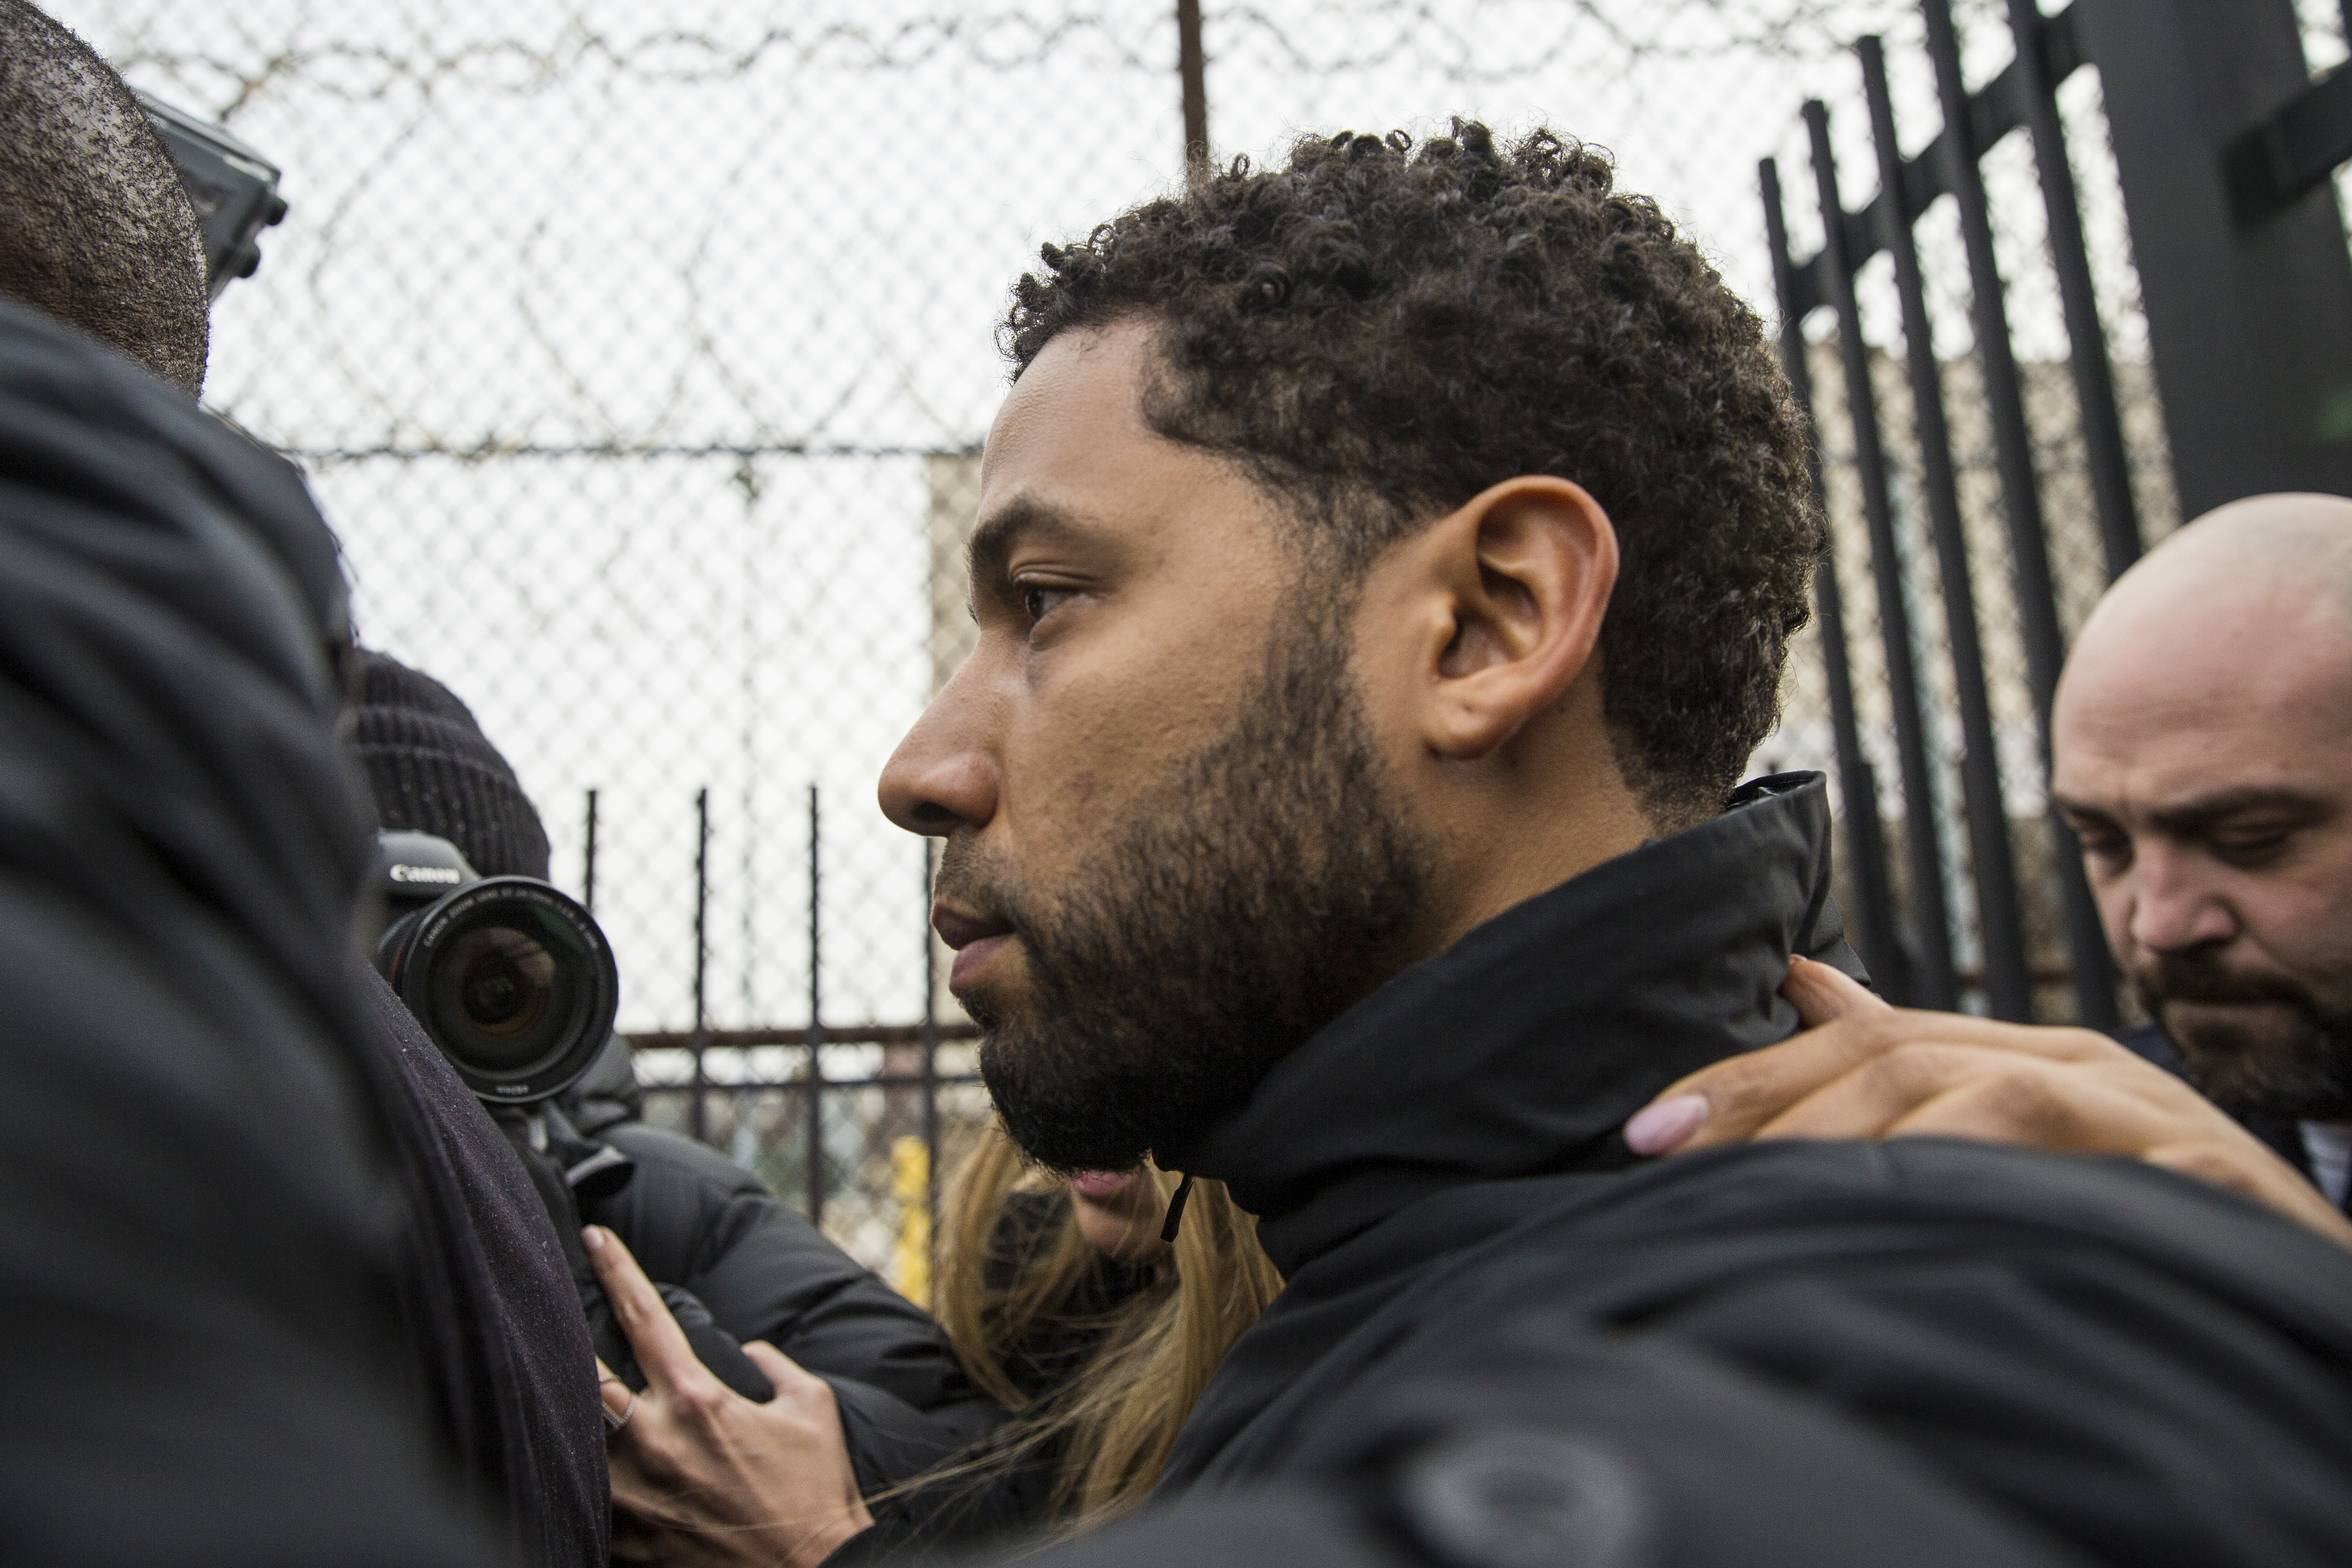 """Empire"" actor Jussie Smollett leaves Cook County jail following his release, Thursday, Feb. 21, 2019, in Chicago. Smollett was charged with disorderly conduct and filling a false police report when he said he was attacked in downtown Chicago by two men who hurled racist and anti-gay slurs and looped a rope around his neck, a police official said."